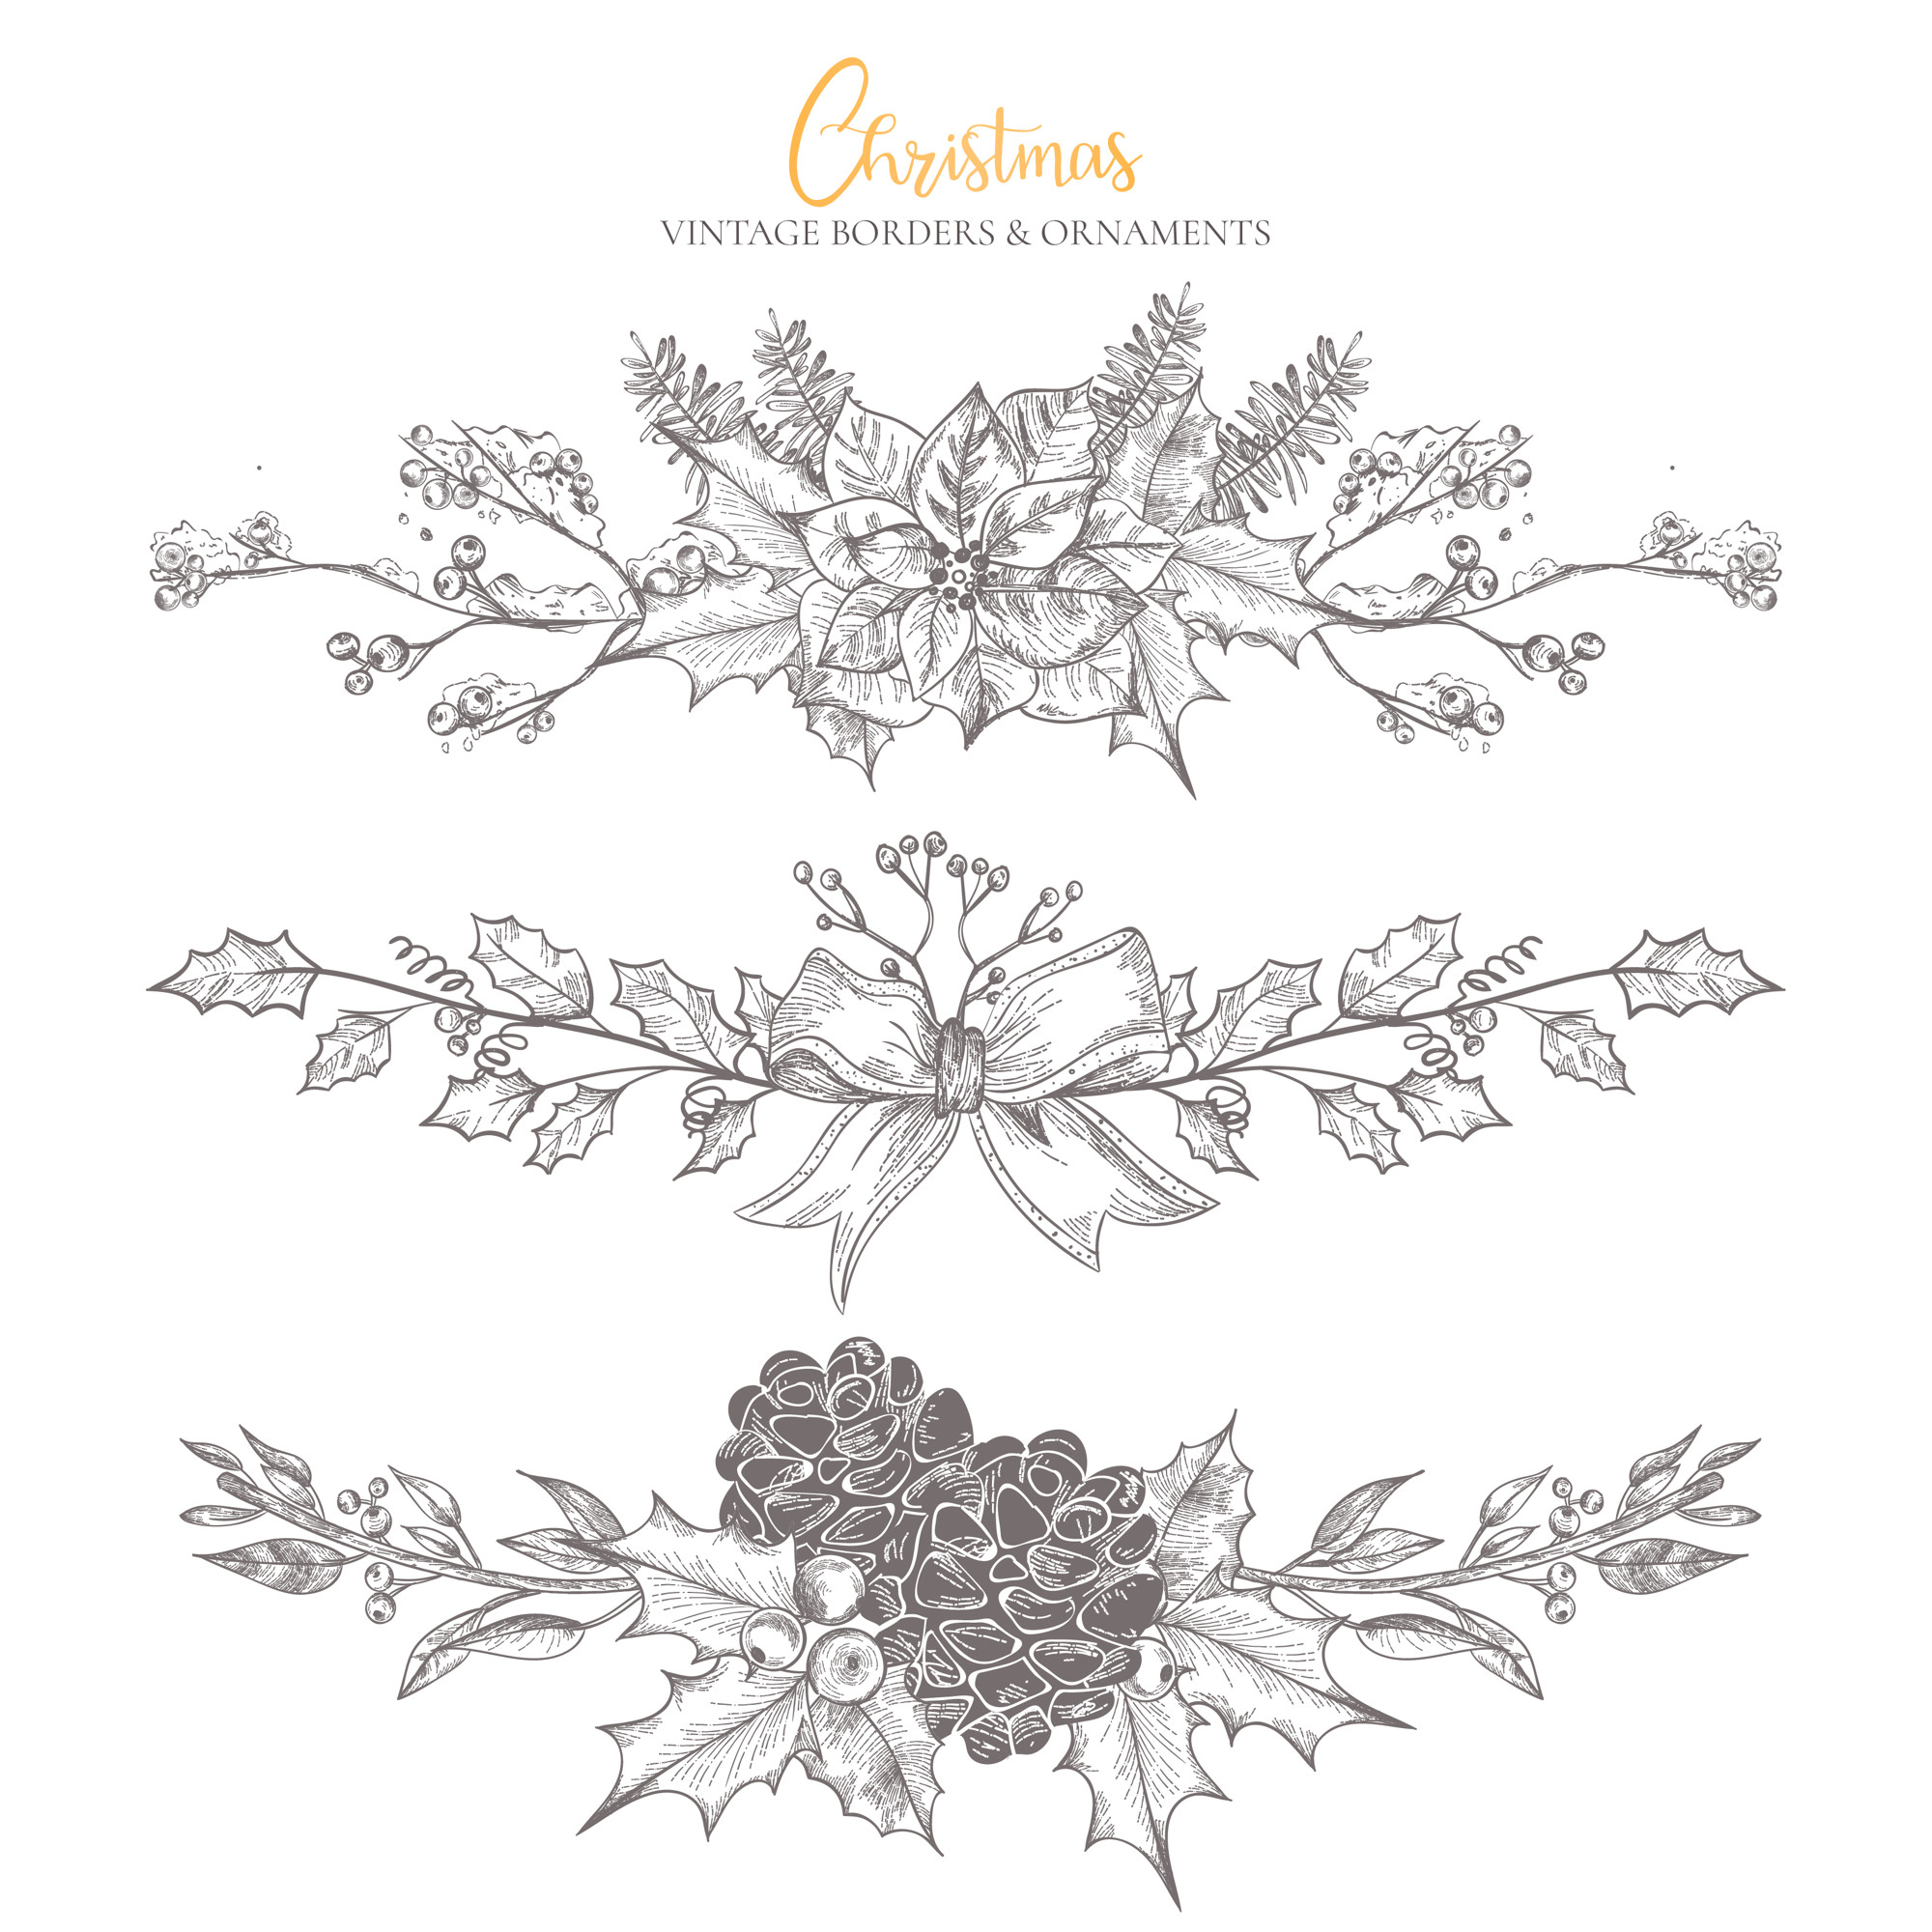 Christmas Vintage Borders & Ornaments Collection